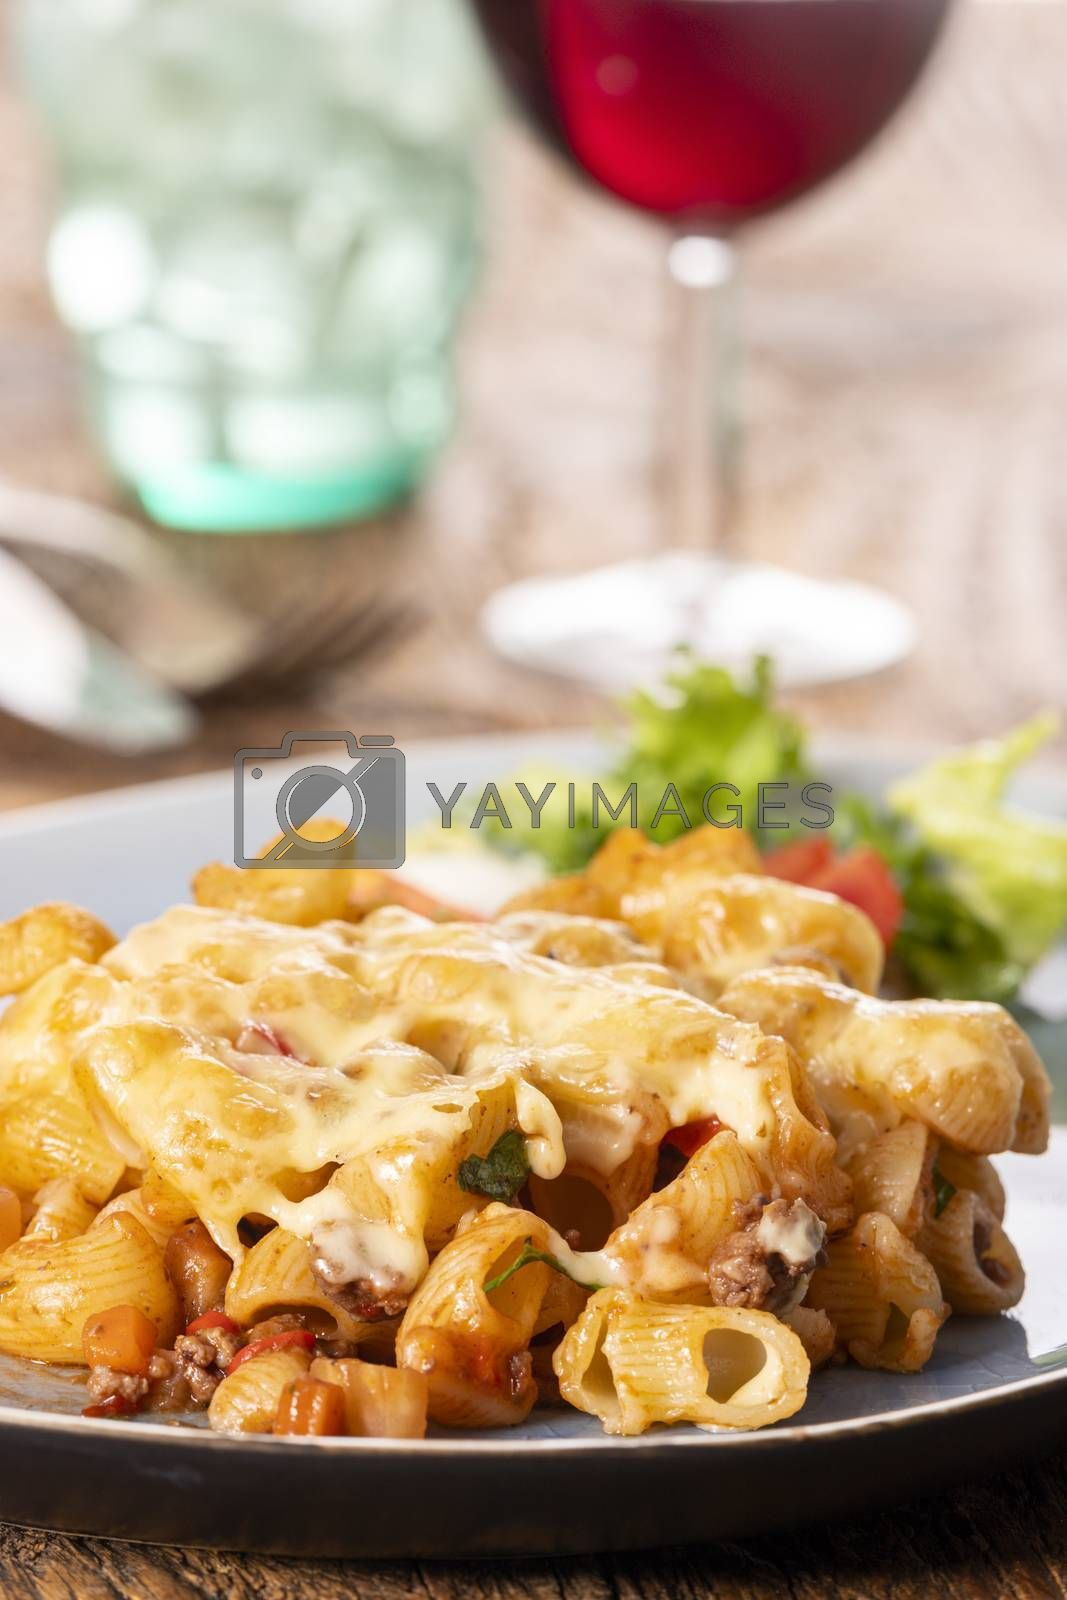 portion of a pasta gratin on wood